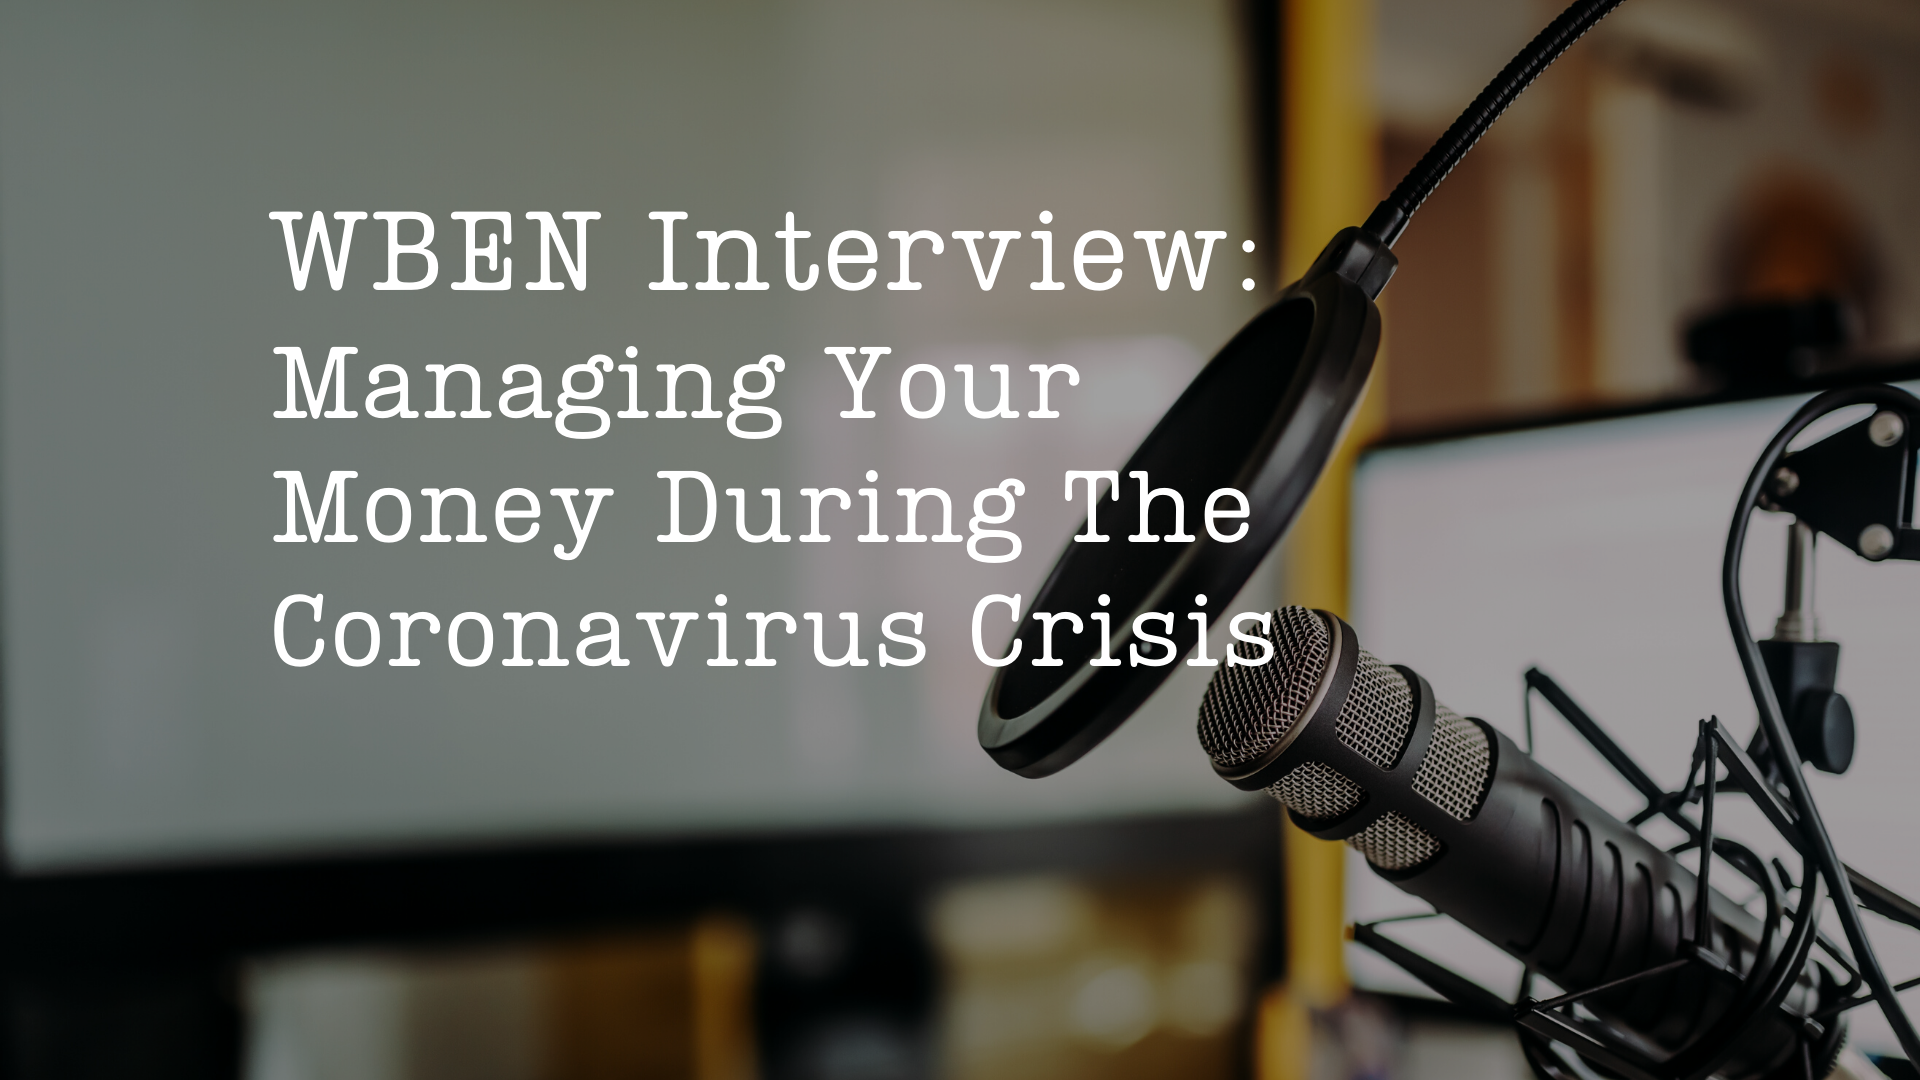 WBEN Interview: Managing Your Money During The Coronavirus Crisis